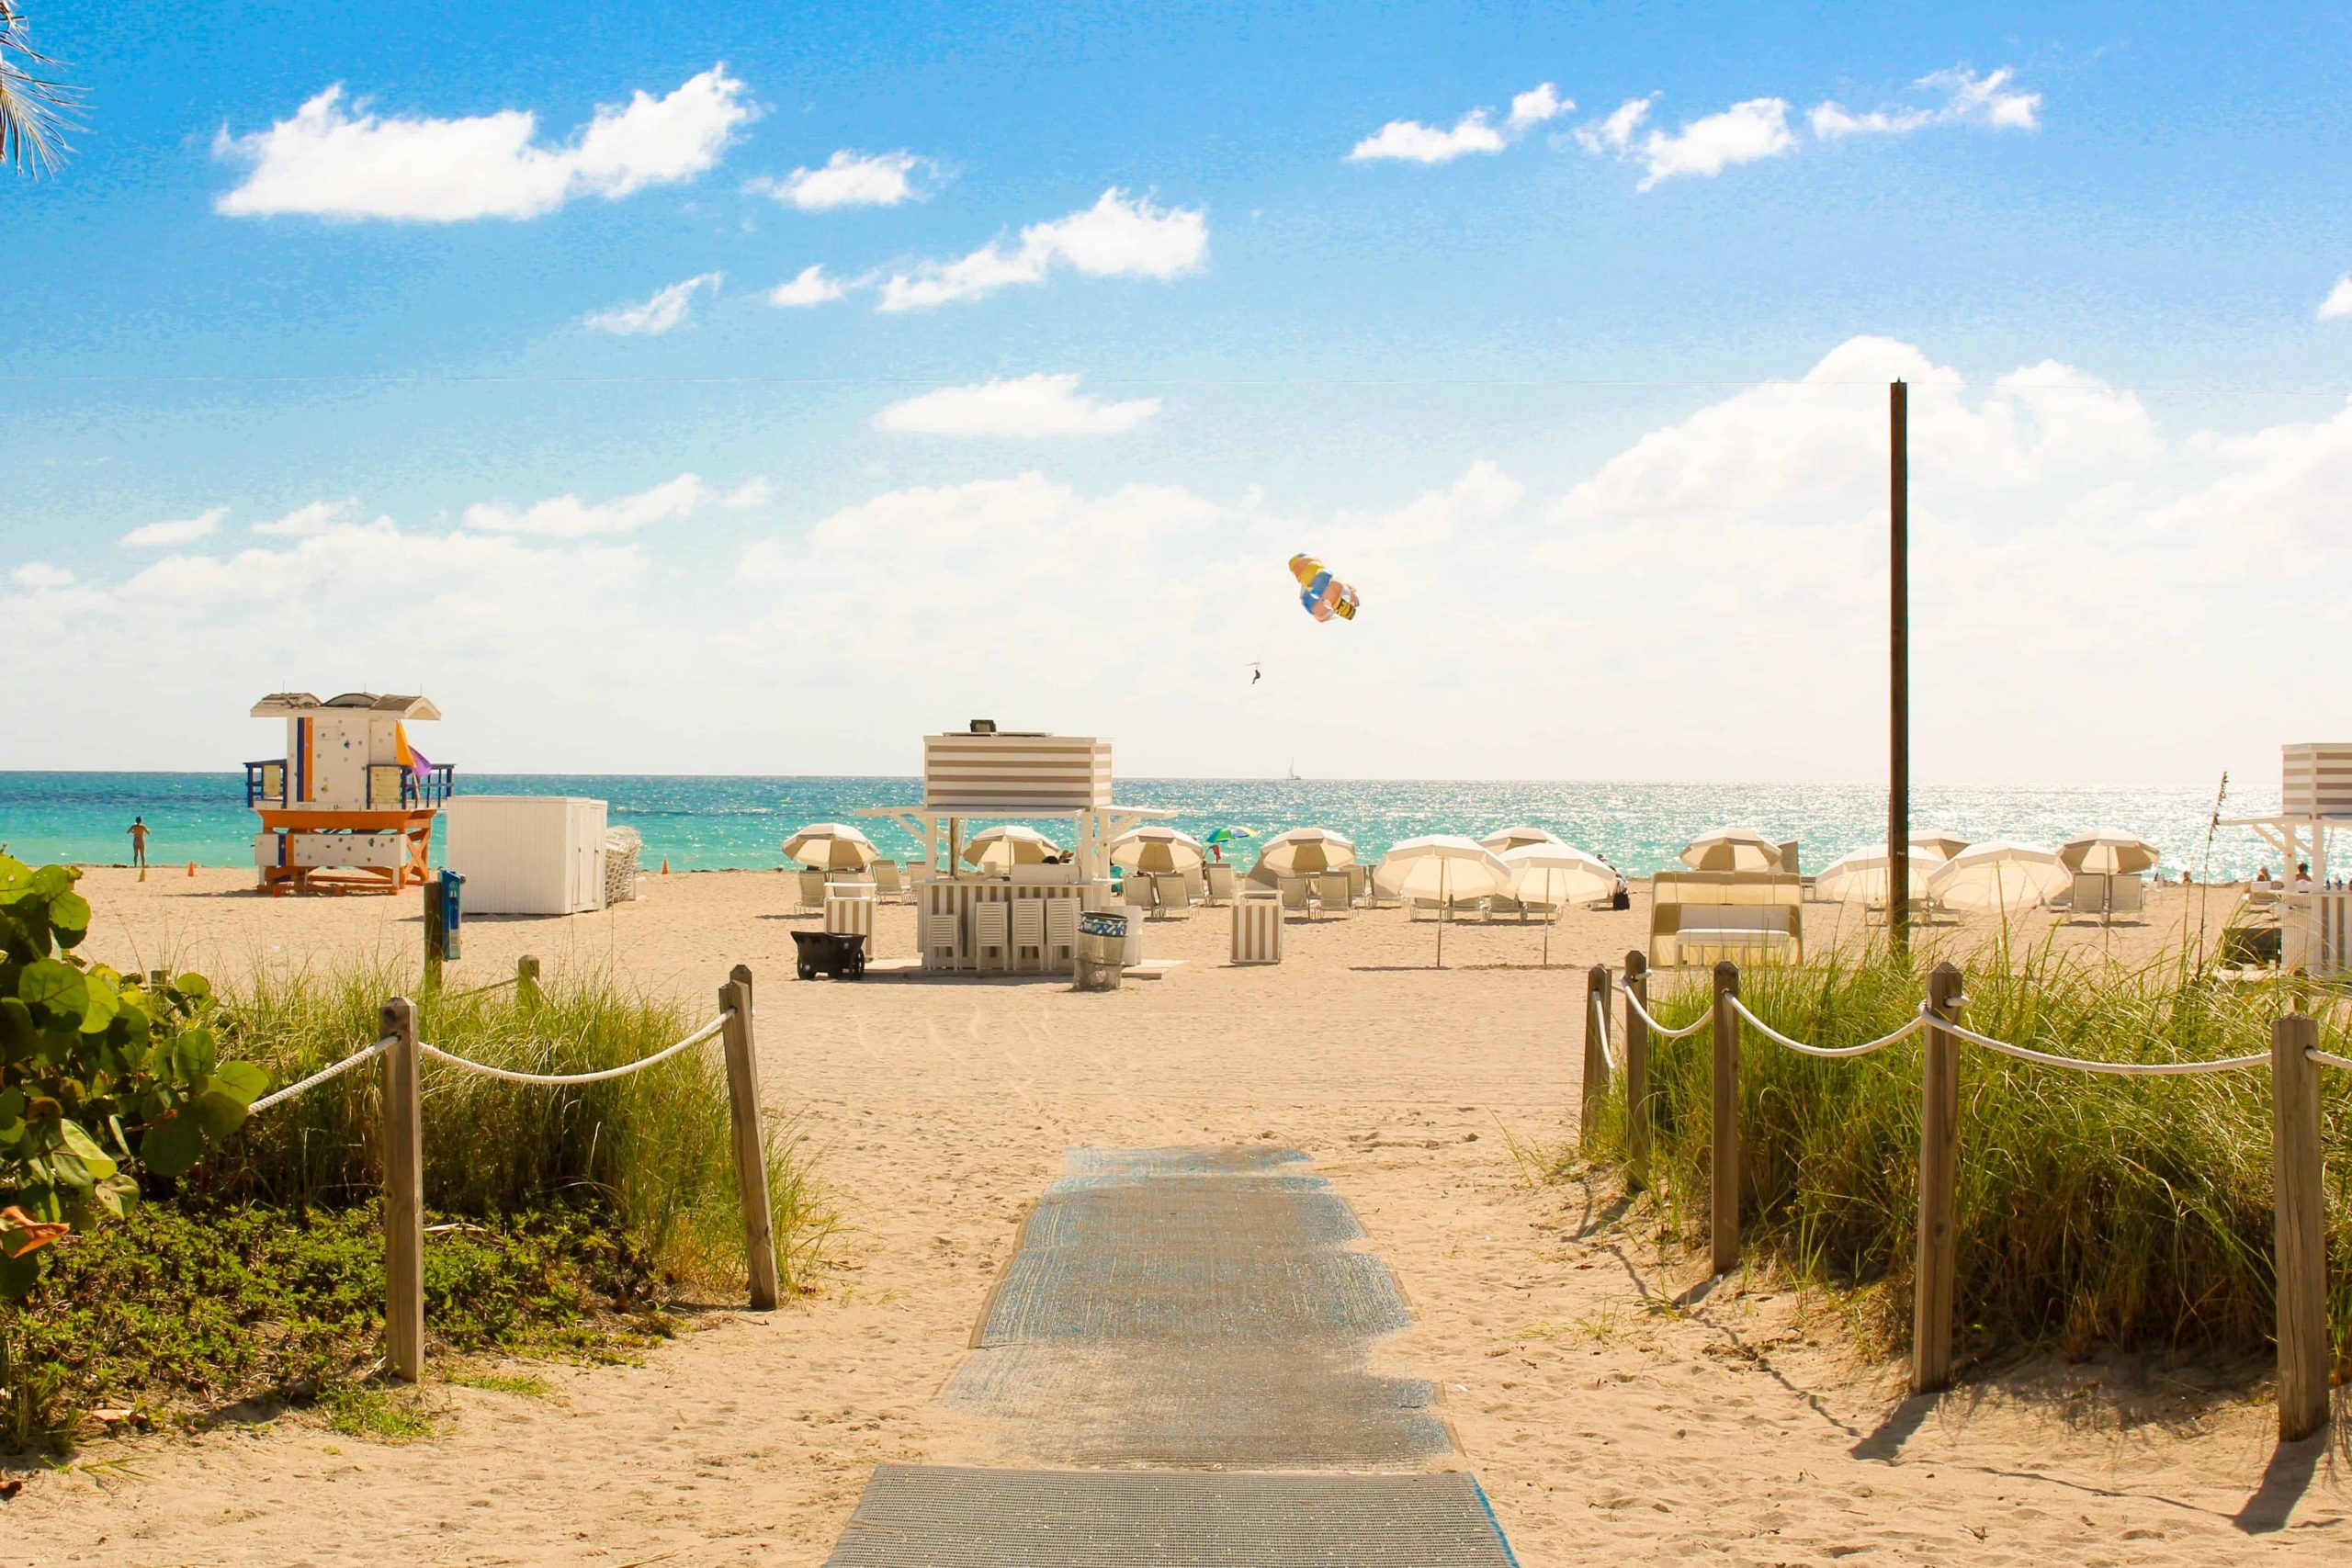 8 Florida Coasts: Regions To Visit For Your Winter Escape (Part 1 Of 3)